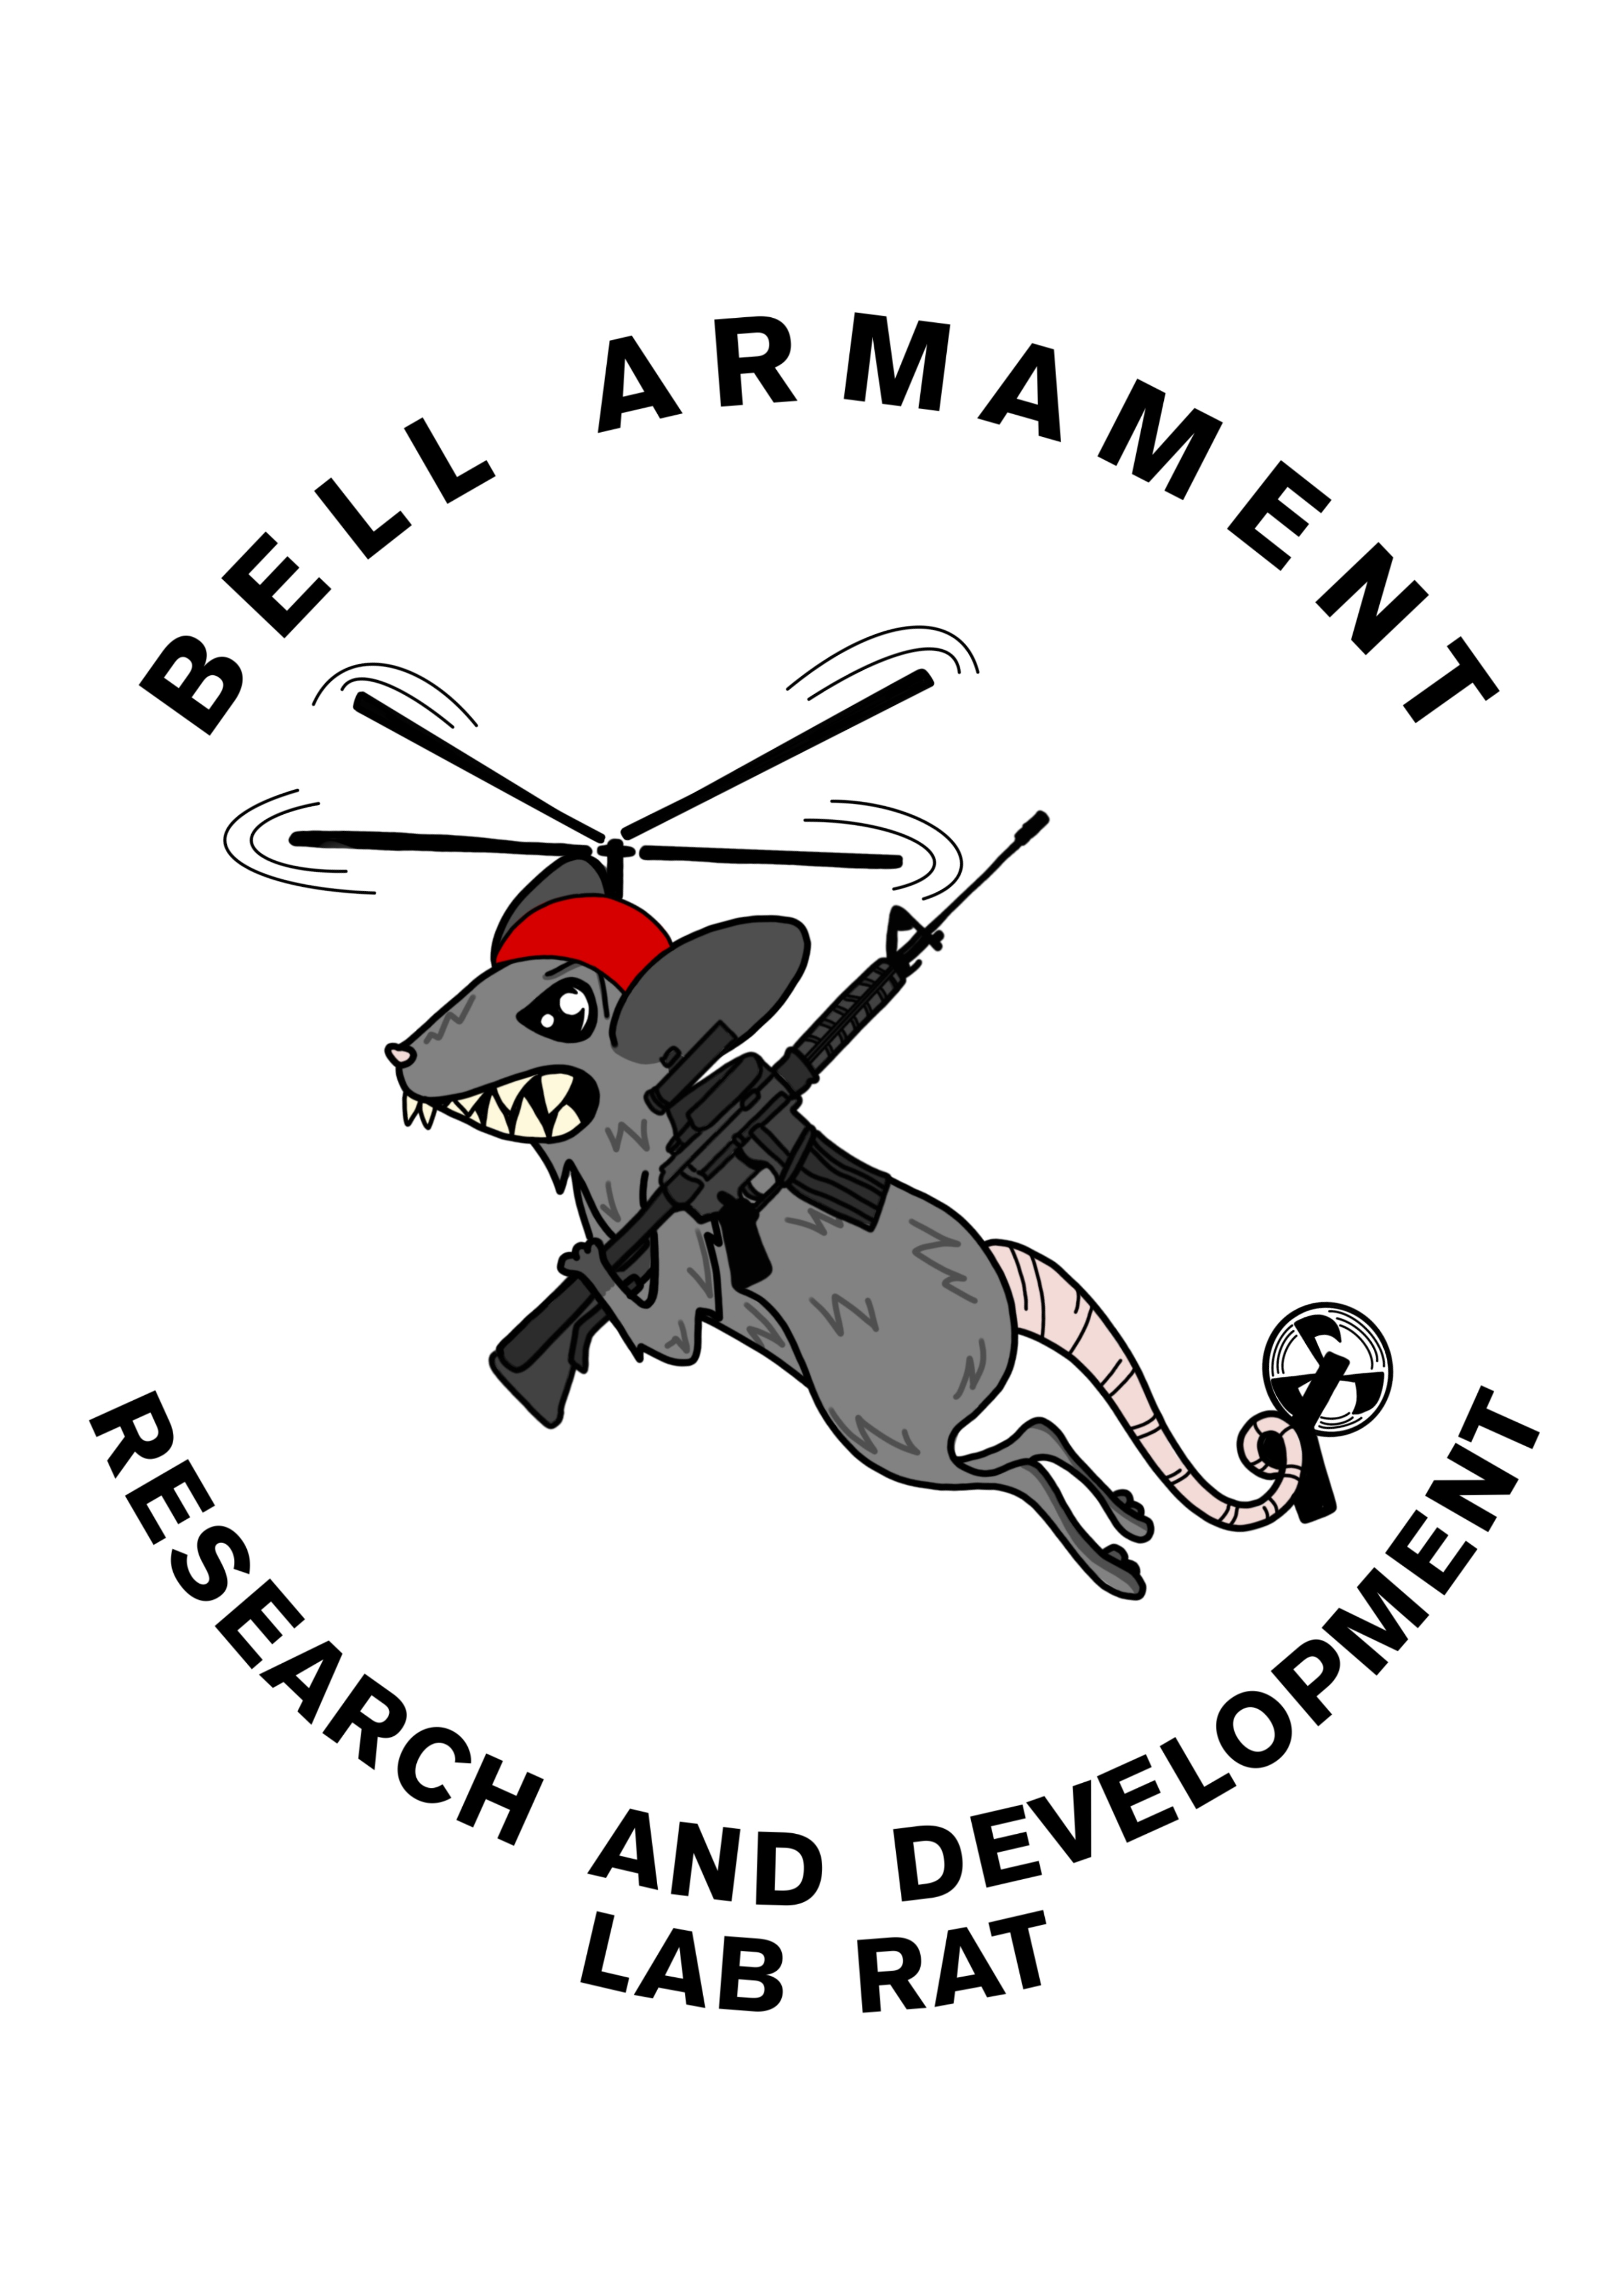 Bell Armament LLC